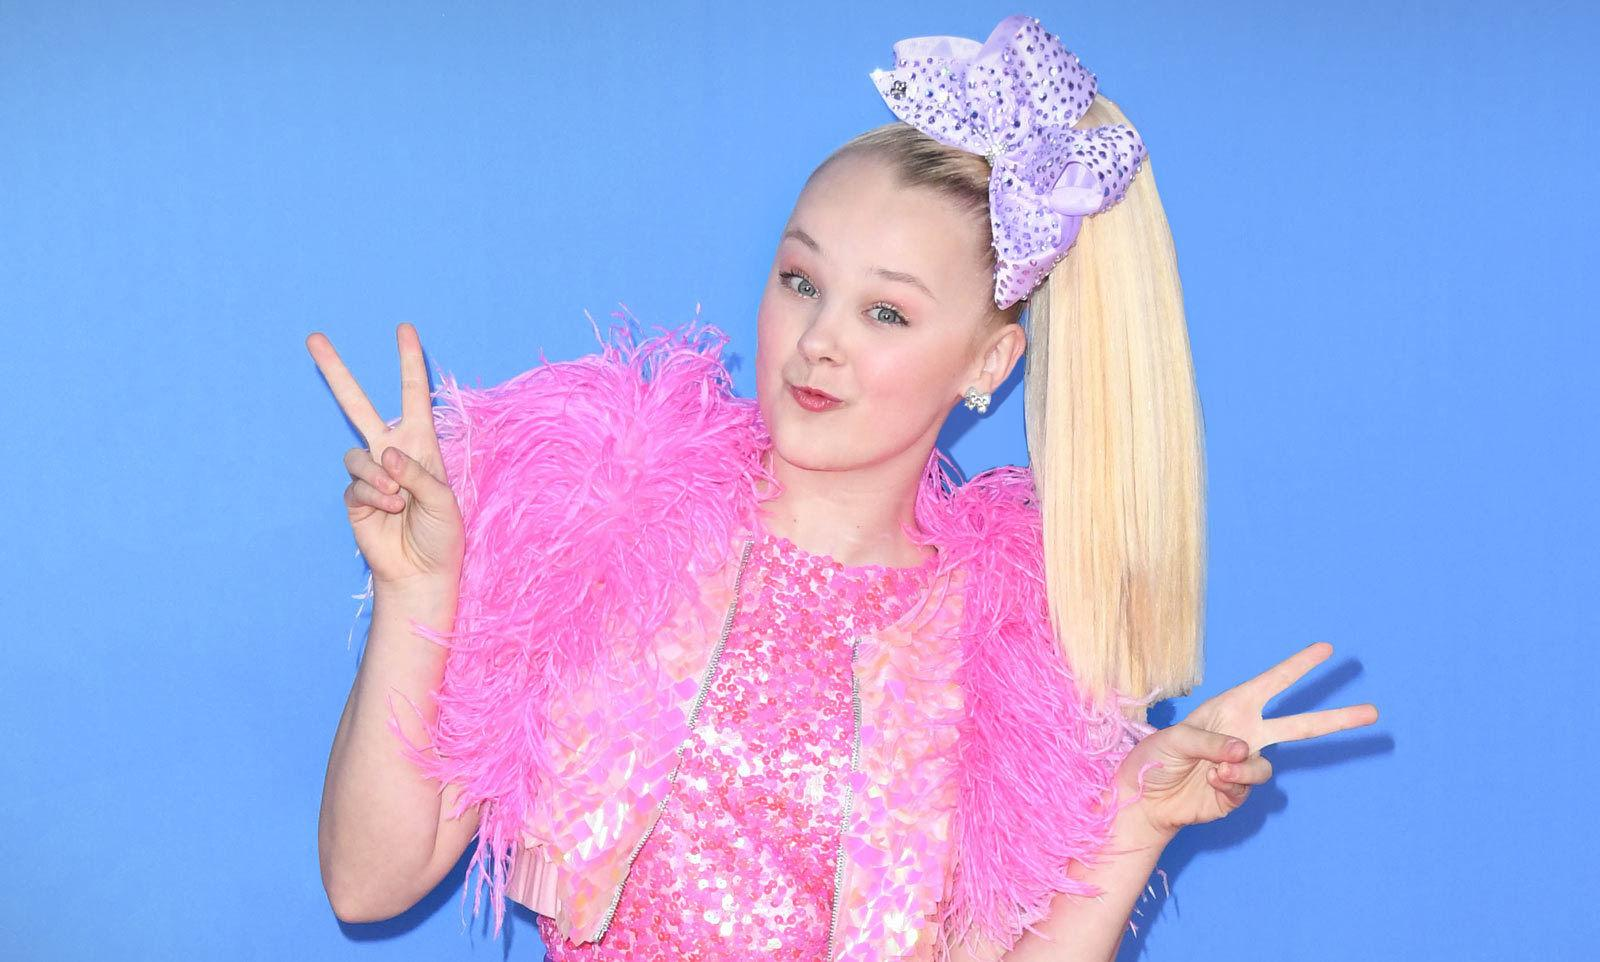 JoJo Siwa Disables Her Instagram Comments After Getting Really 'Mean' Ones